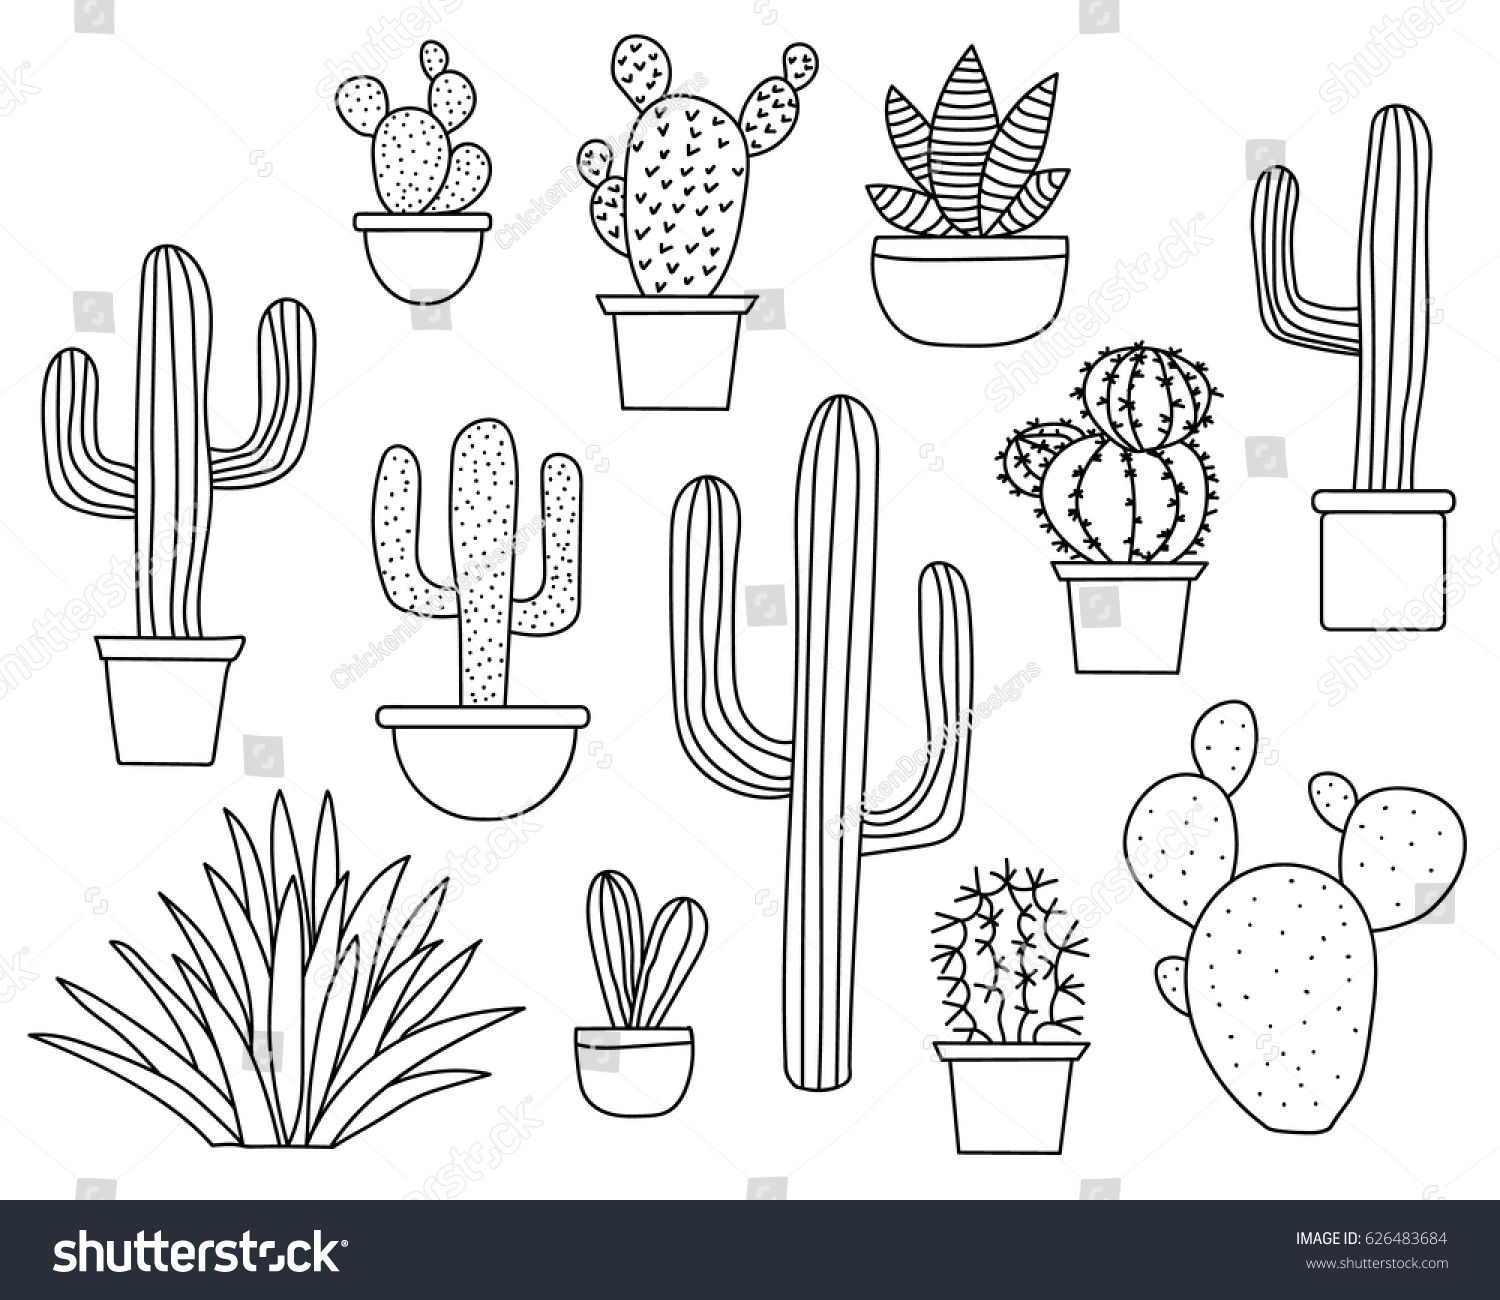 Set Of Hand Drawn Cactus Plants In A Cartoon Style Including